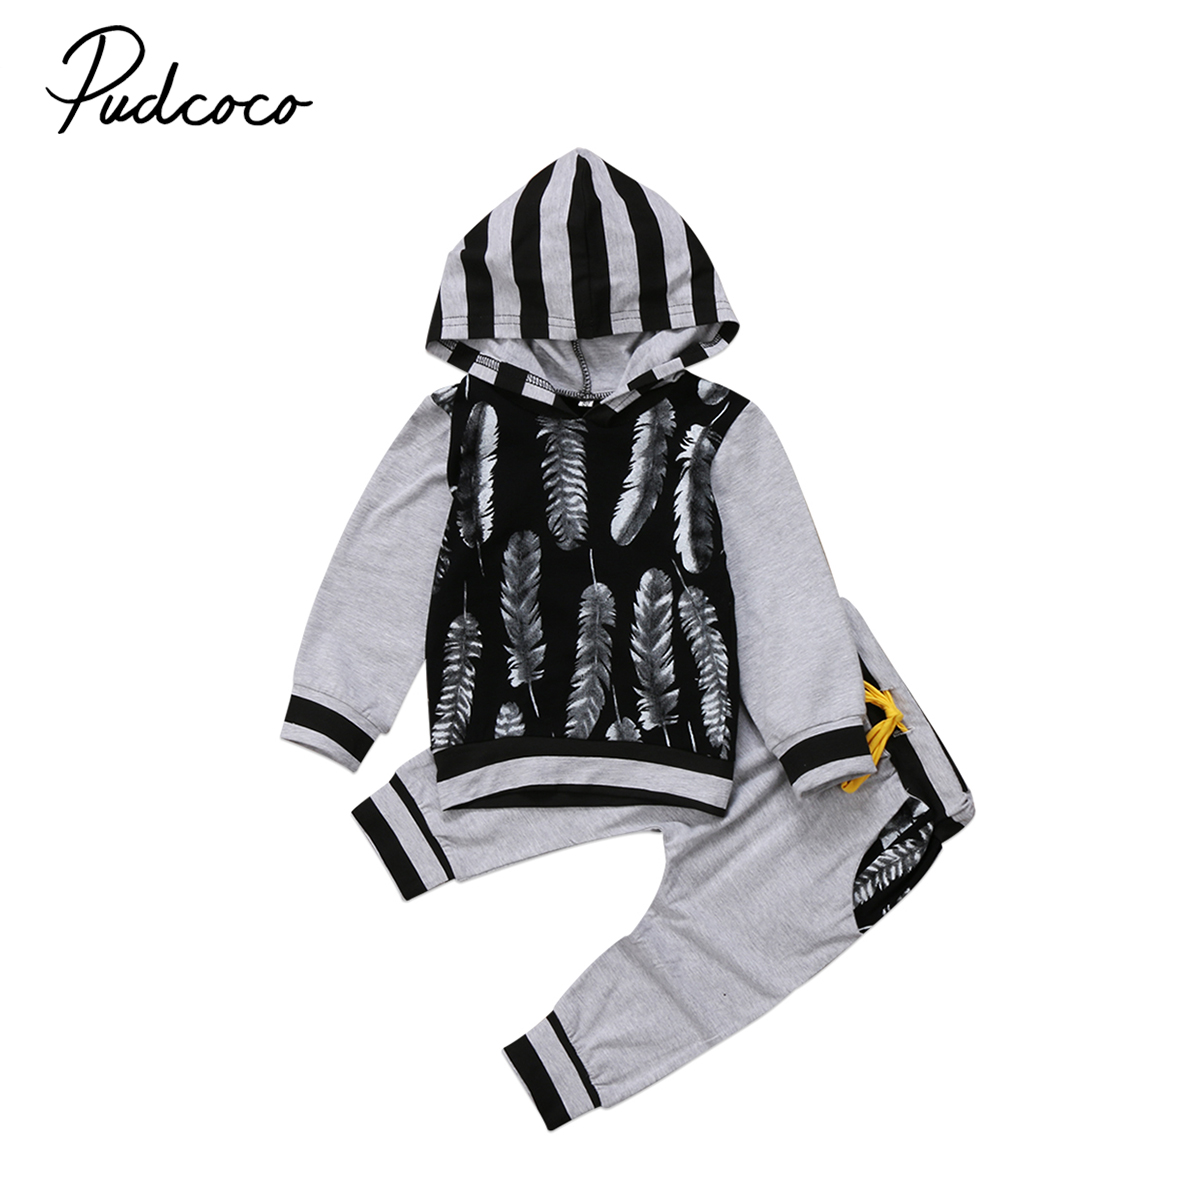 2017 autumn winter new baby clothes set Newborn Kid Baby Boy girls Clothes Sweatshirt Hoodies T shirt+ Pants baby Outfits 1-3Y